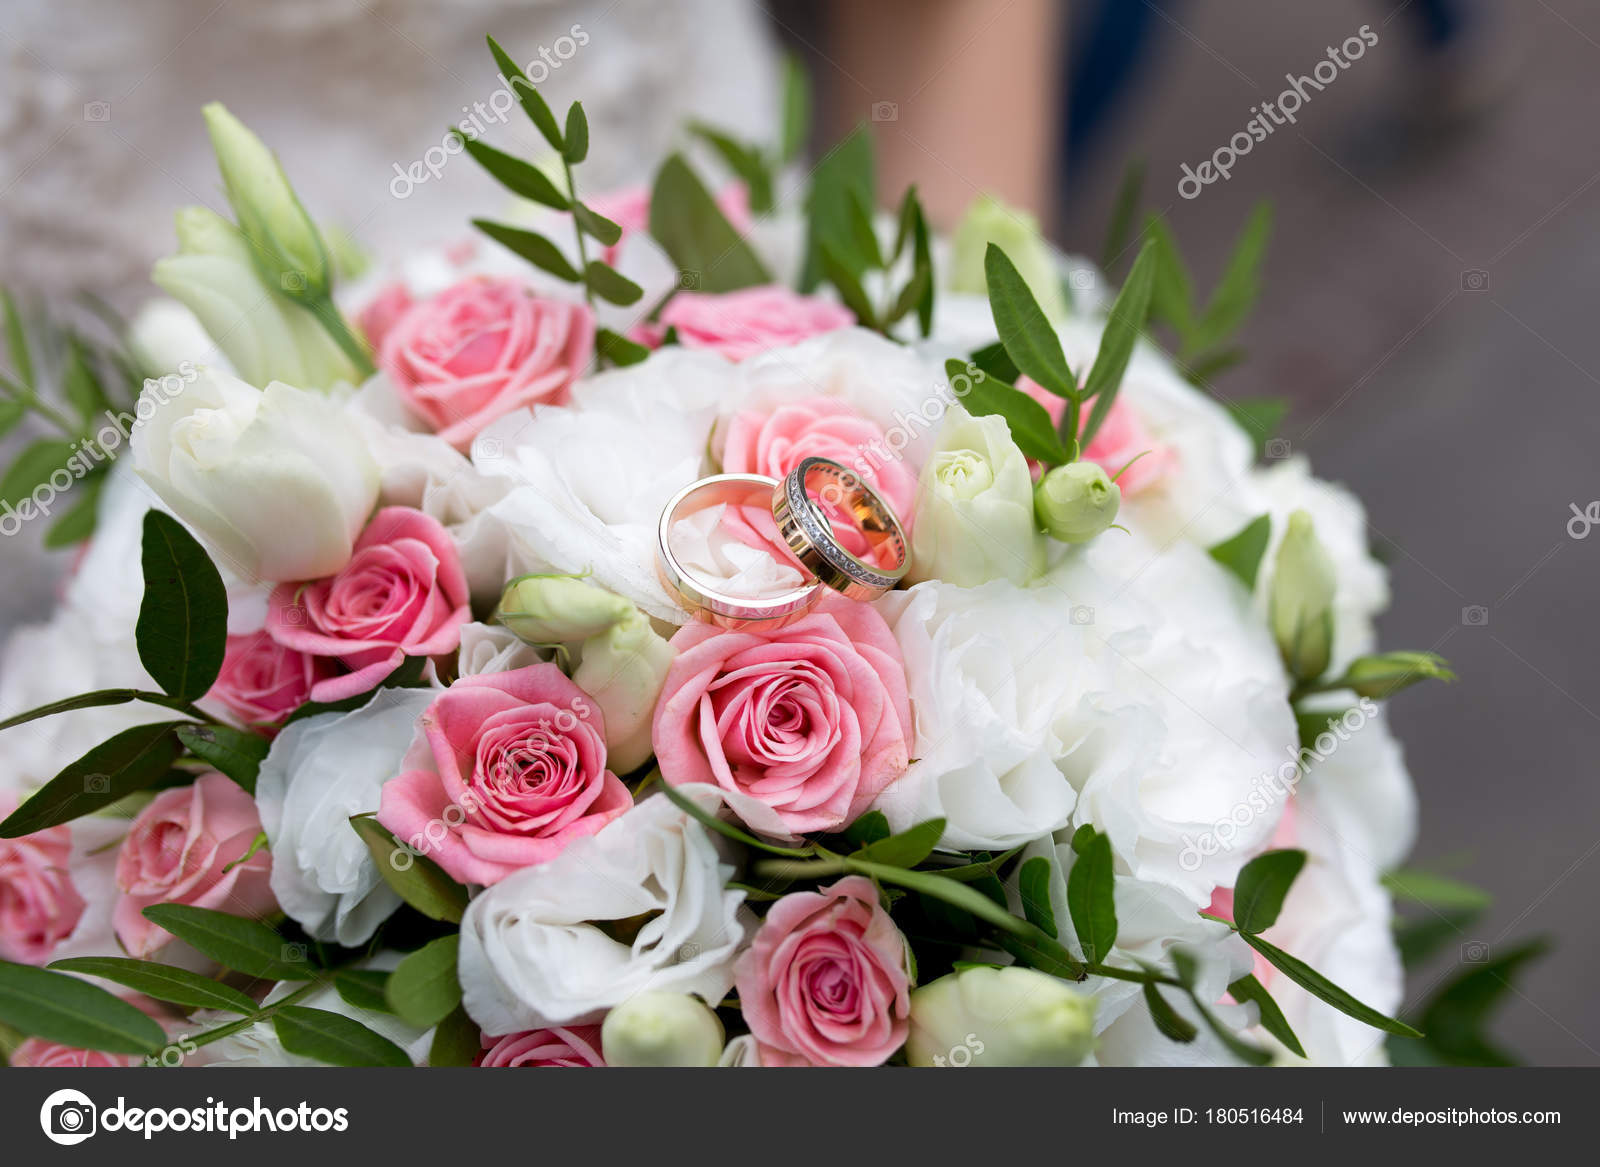 Big flower bouquet stock photo olgaosa 180516484 big bouquet and two wedding rings goods for wedding this photo is perfect for magazines shops dealing with wedding dresses ceremonies bride groom izmirmasajfo